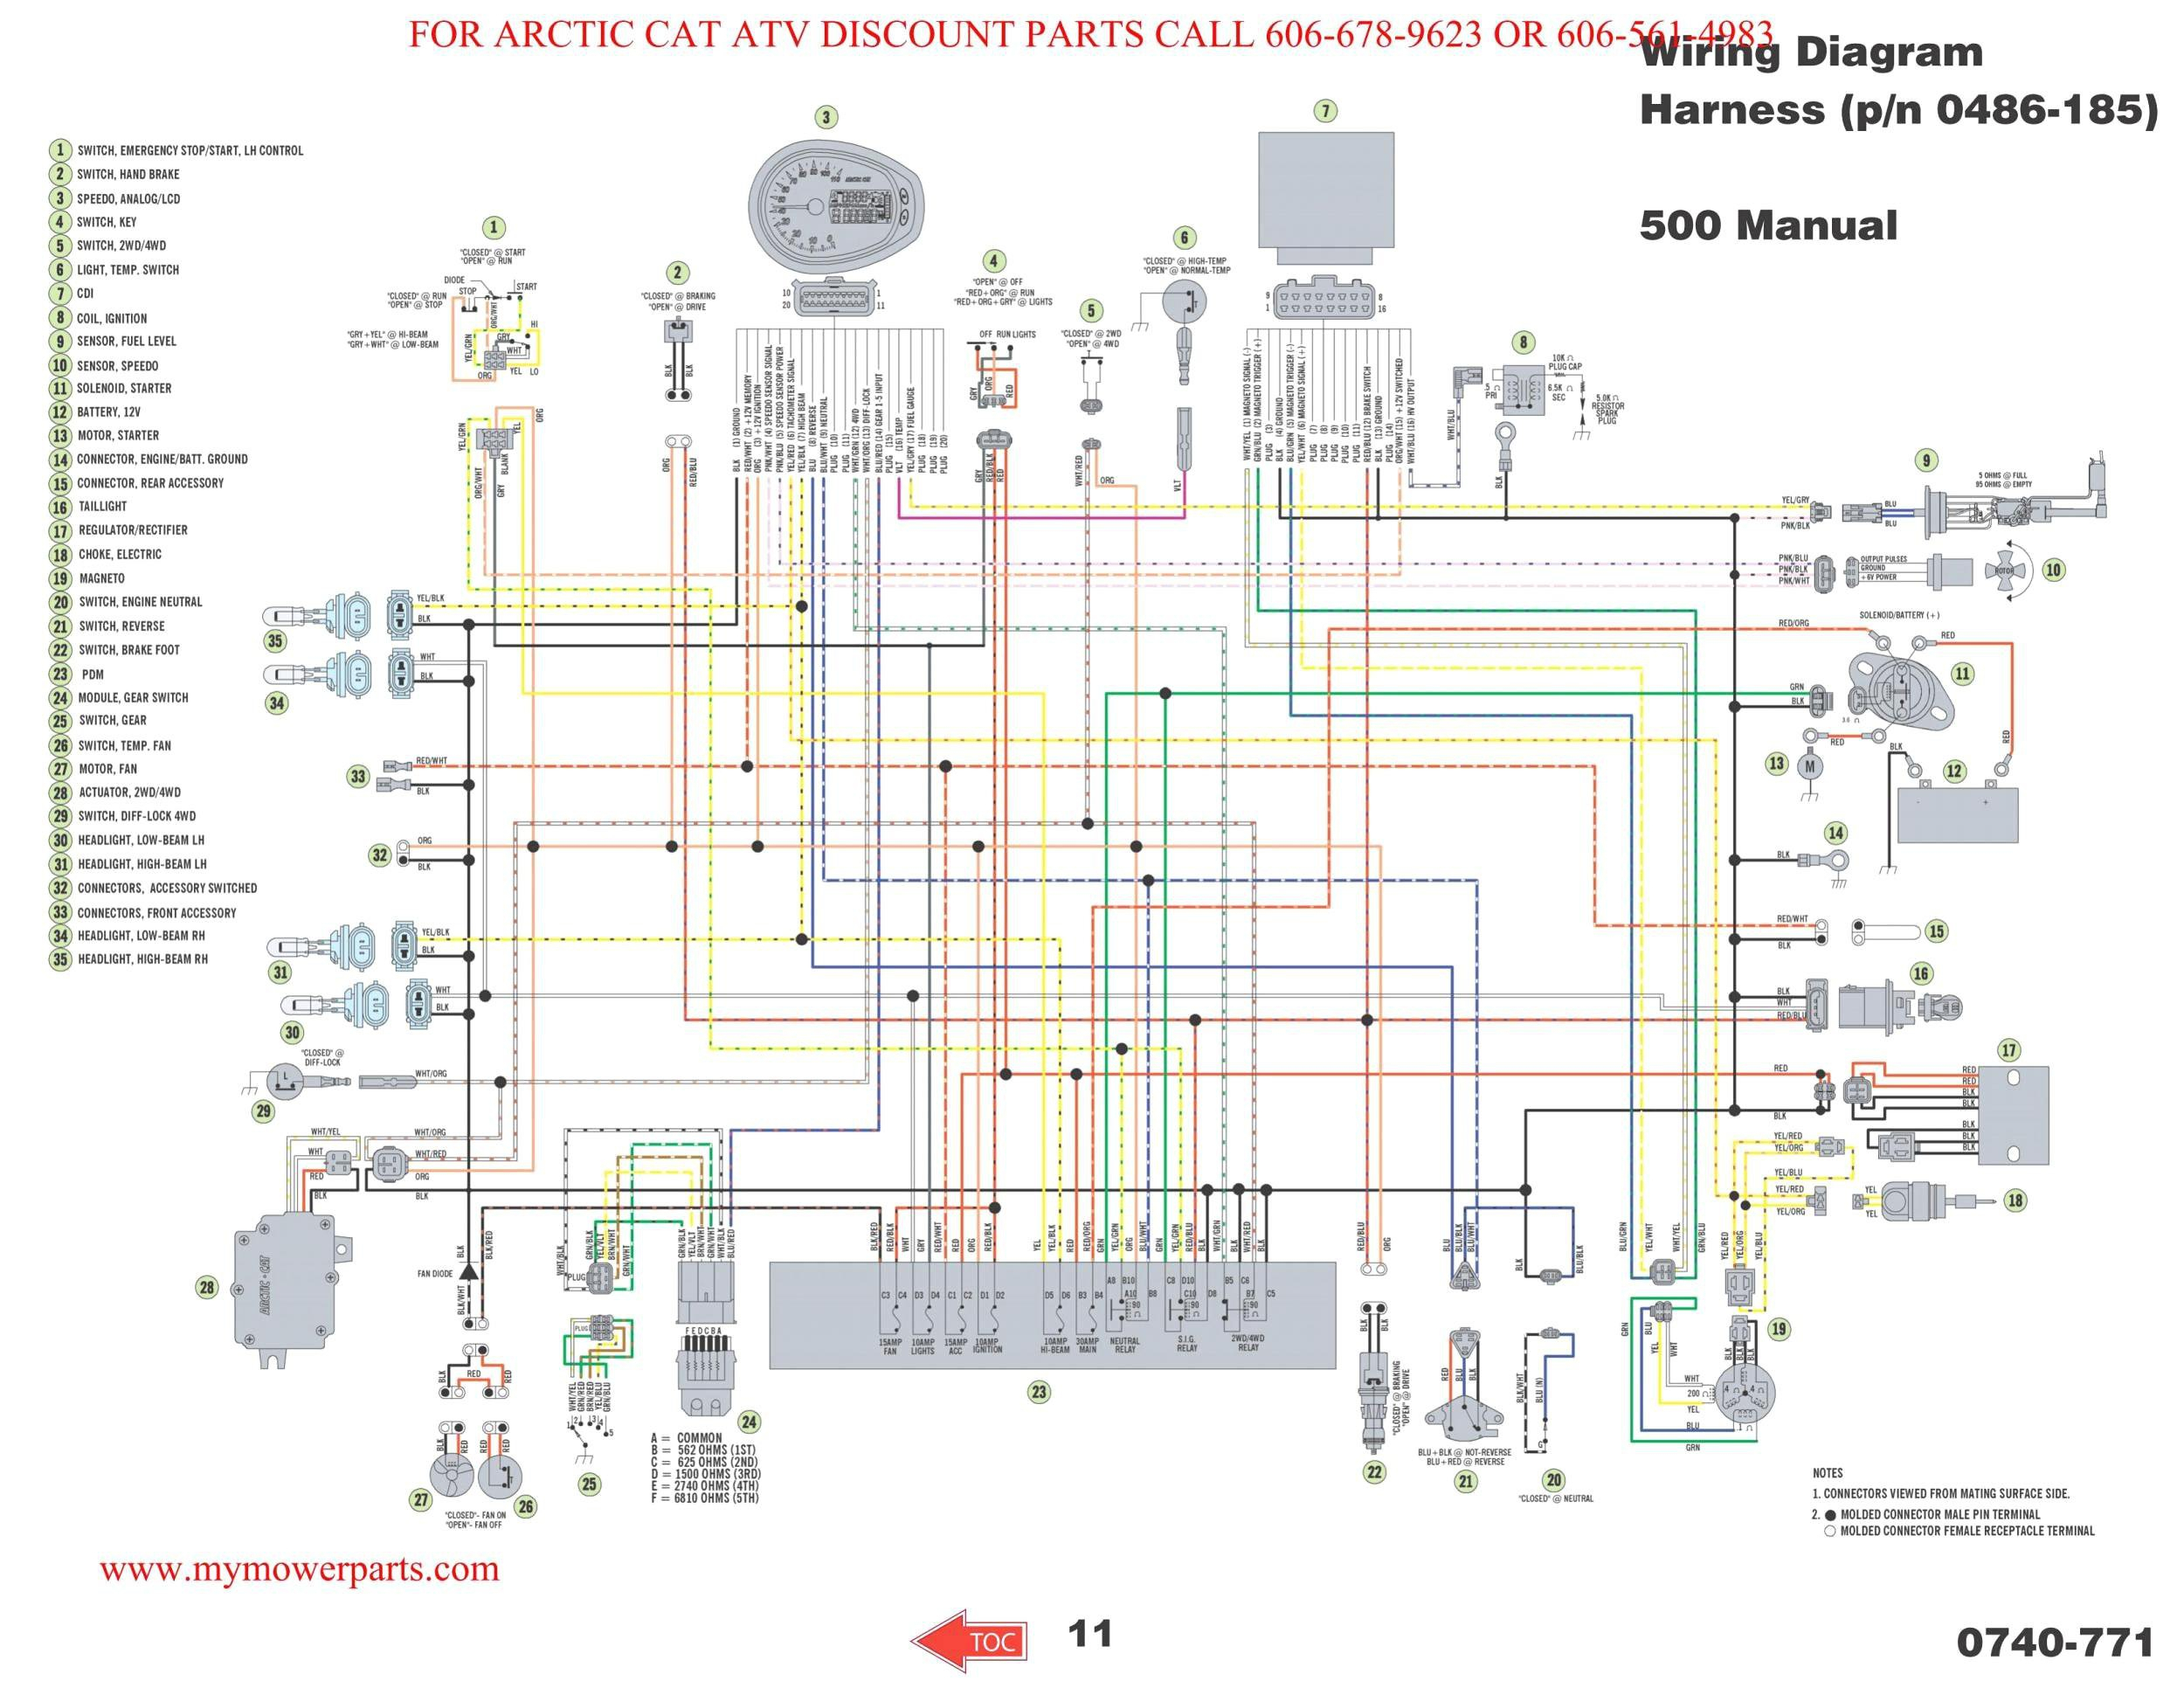 2004 polaris sportsman 400 wiring diagram sample rh wholefoodsonabudget com 2004 polaris sportsman 400 electrical diagram Polaris Sportsman 335 Wiring-Diagram